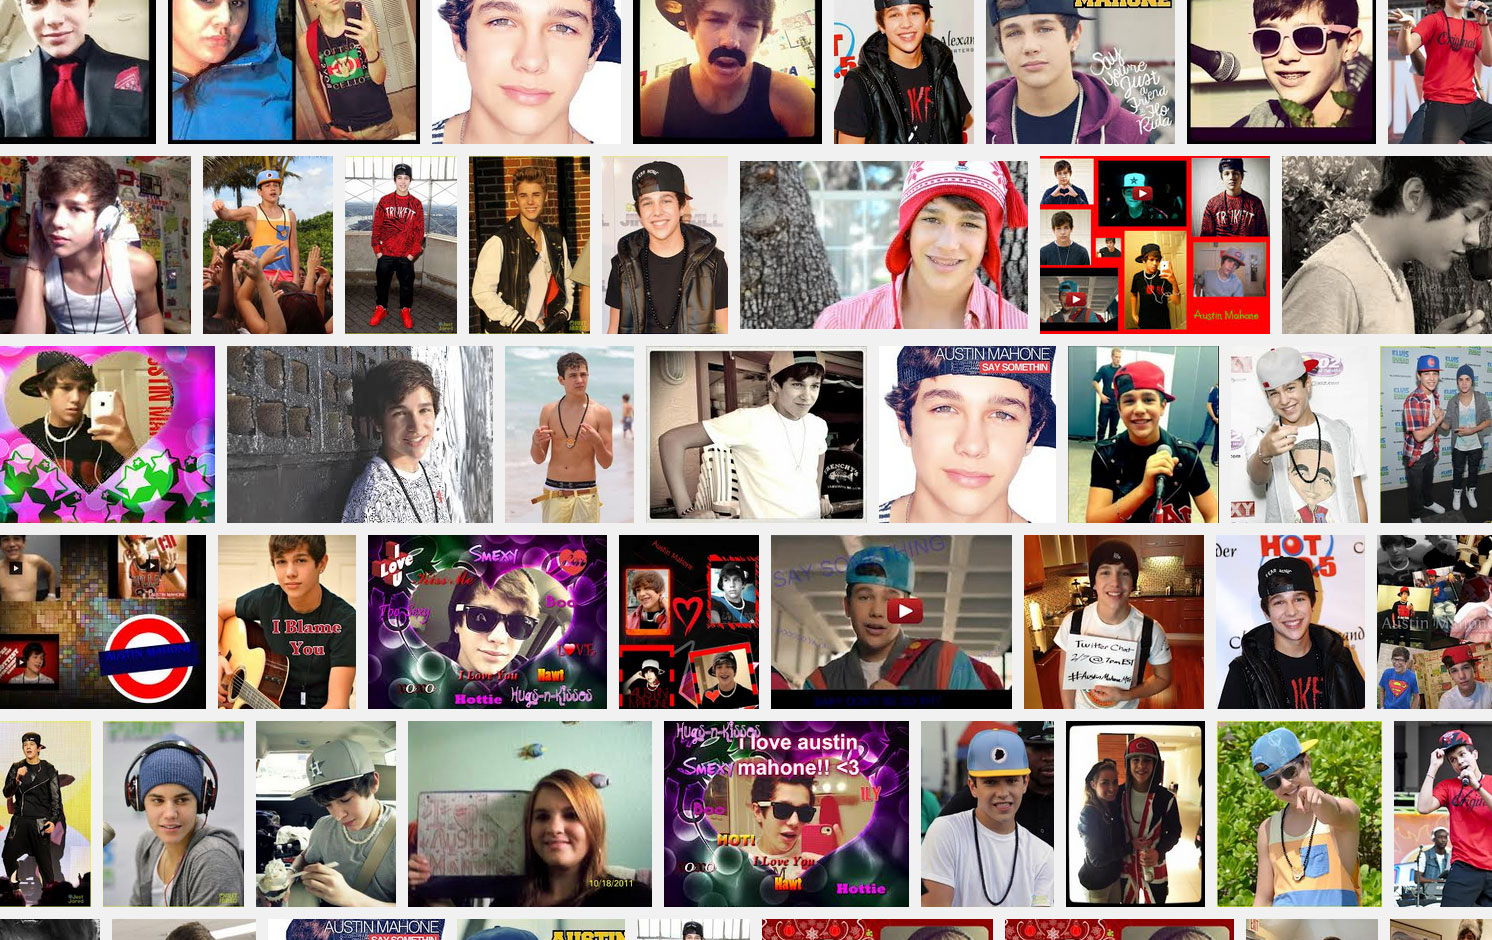 19-p8887-austin-mahone-wallpaper.jpg